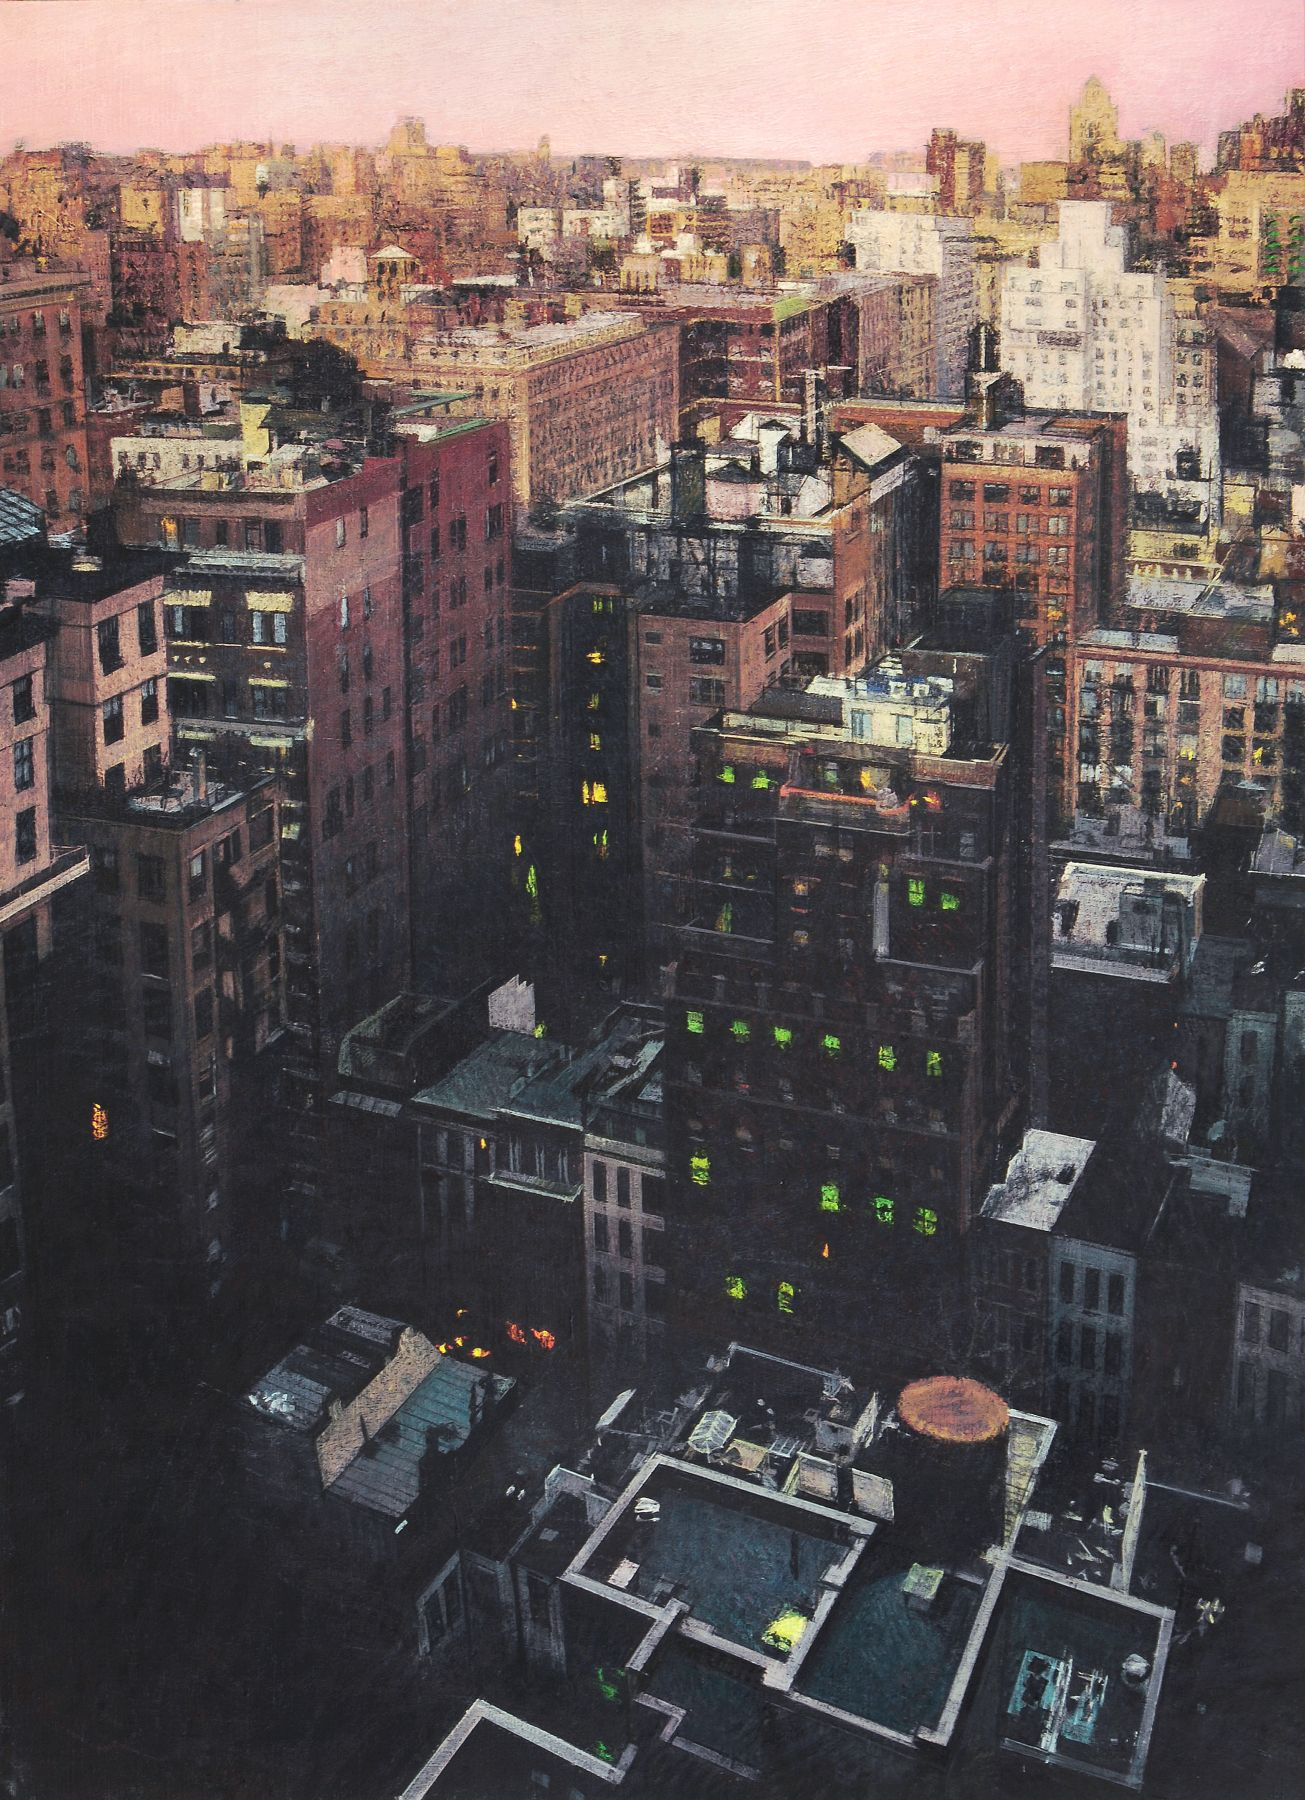 Bernardo Siciliano, Naked City #1 (SOLD), 2009, oil on canvas, 43 3/4 x 31 3/4 inches